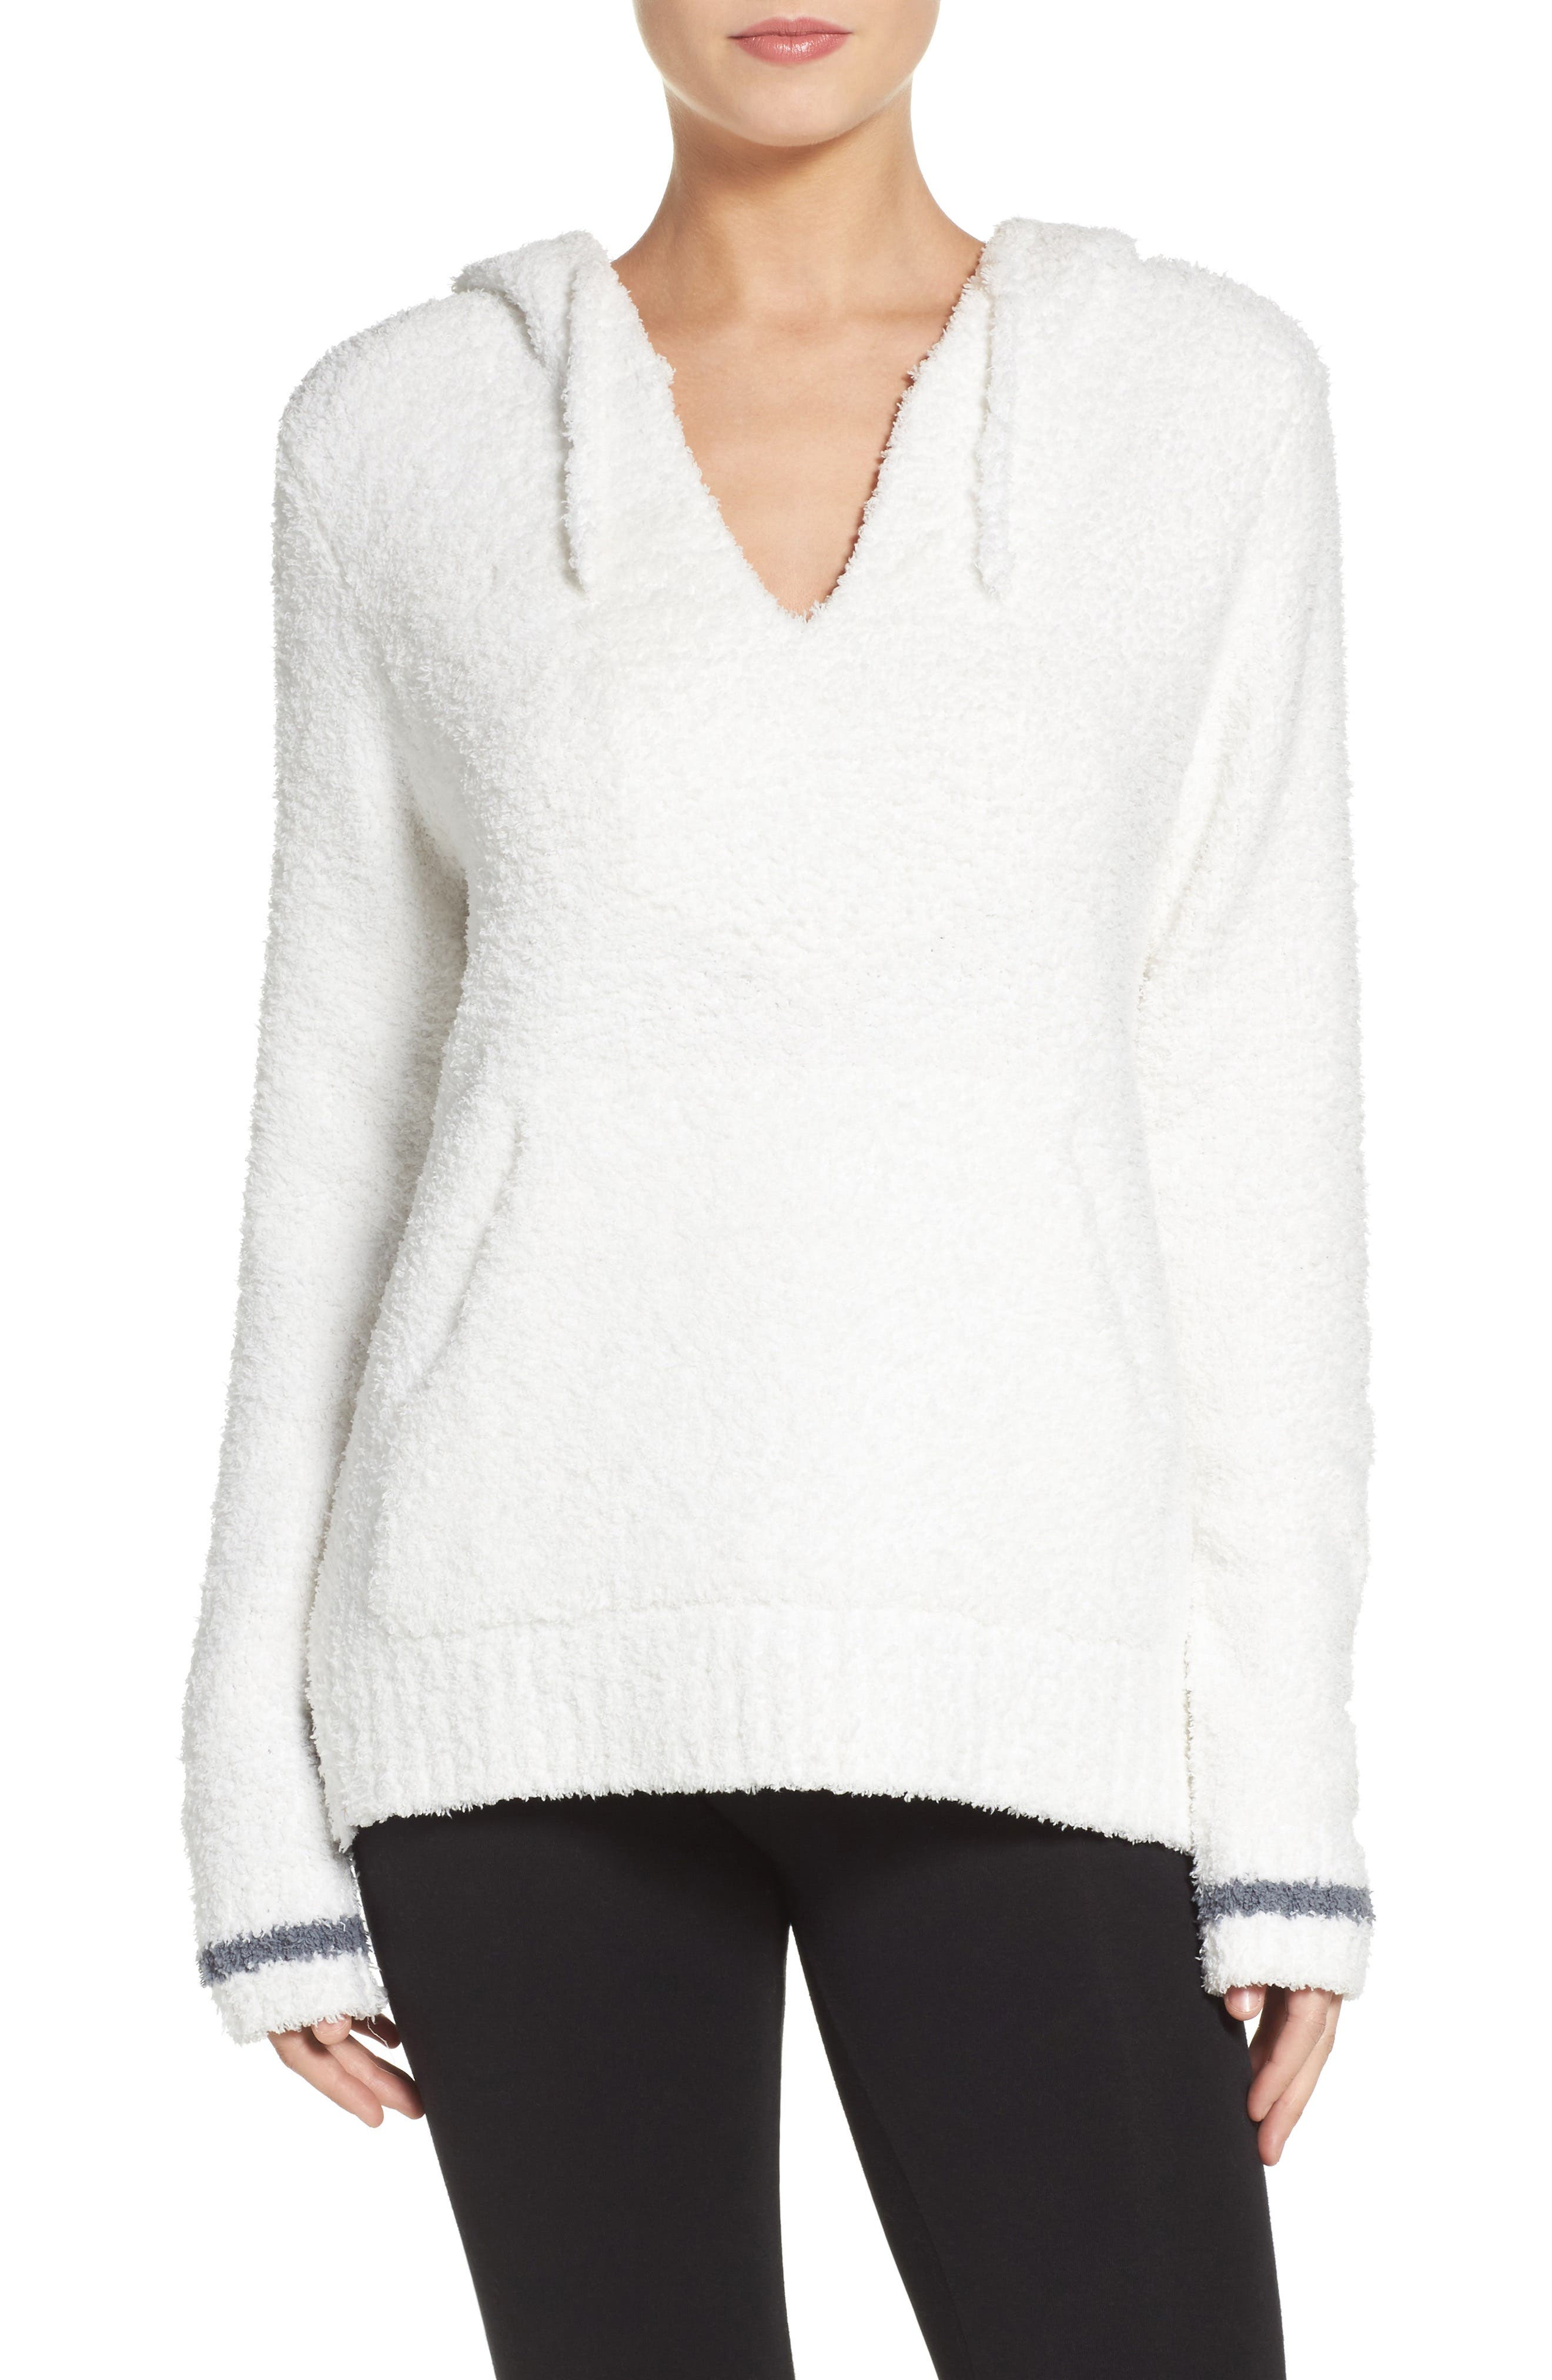 Barefoot Dreams Cozychic<sup>®</sup> Baha Lounge Hoodie,                             Main thumbnail 1, color,                             White/ Graphite Stripe